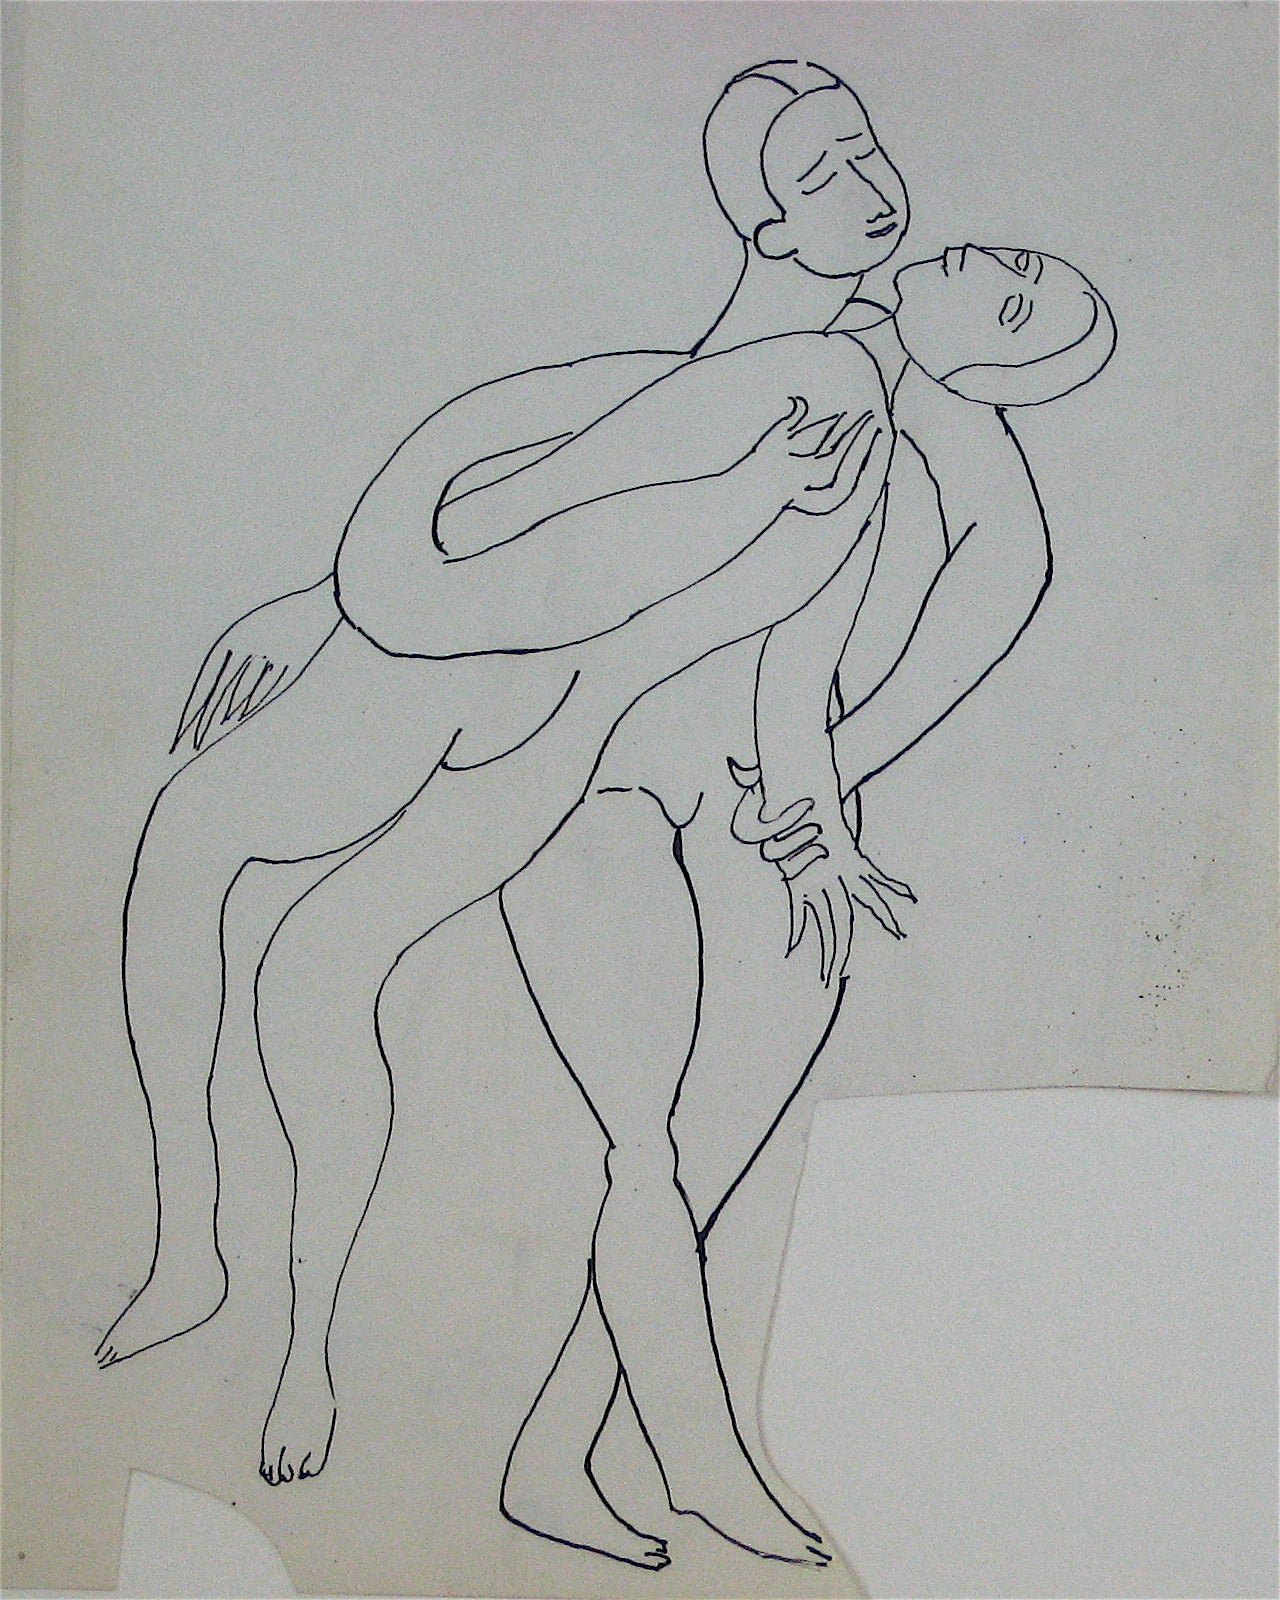 Abstracted Nude Figures Entwined <br>Early 20th Century Ink on Paper <br><br>#11230